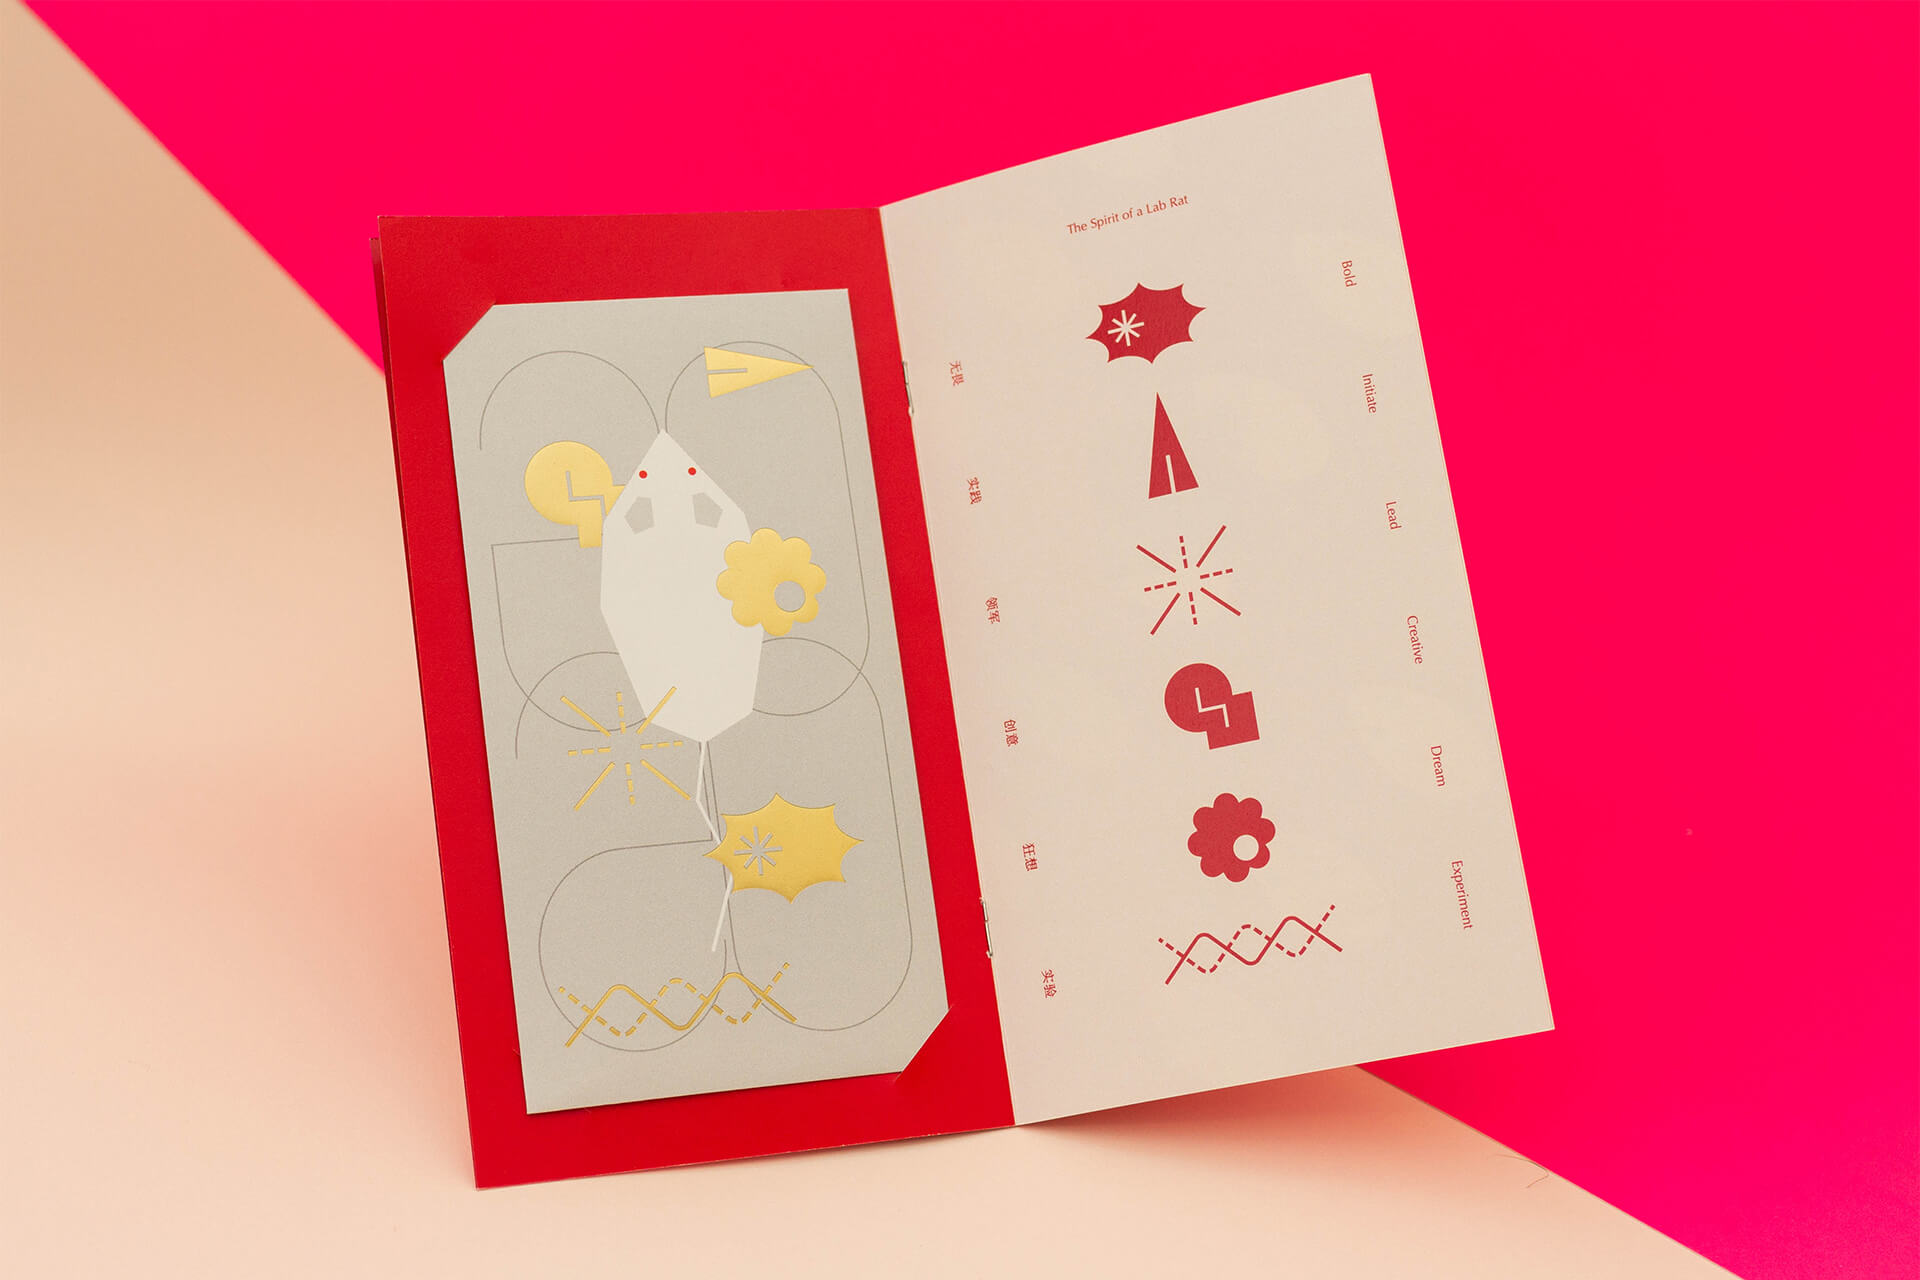 CNY 2020 Greeting Card Content